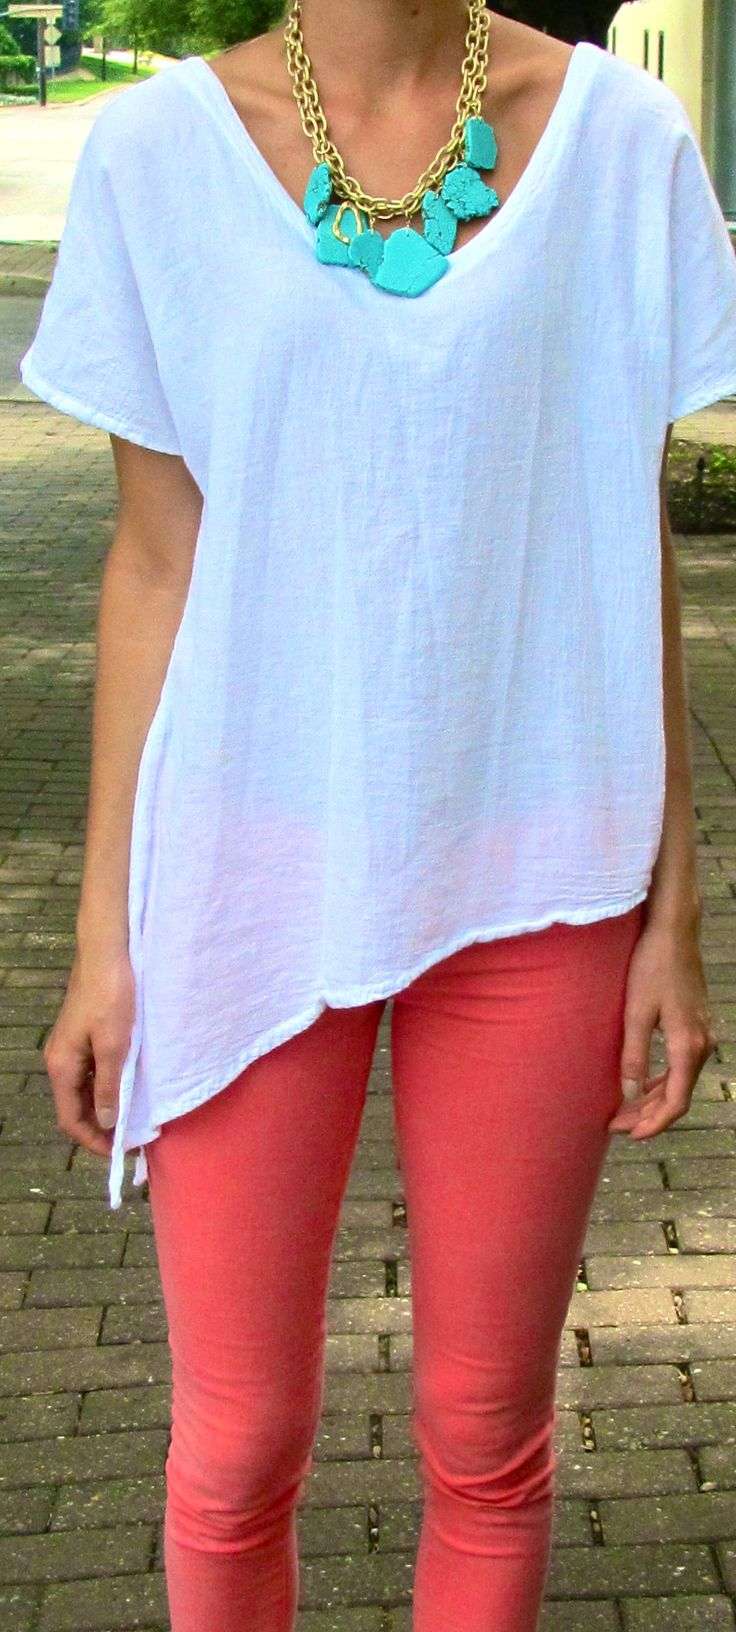 I could try the reverse -- my mint jeans with coral necklace.